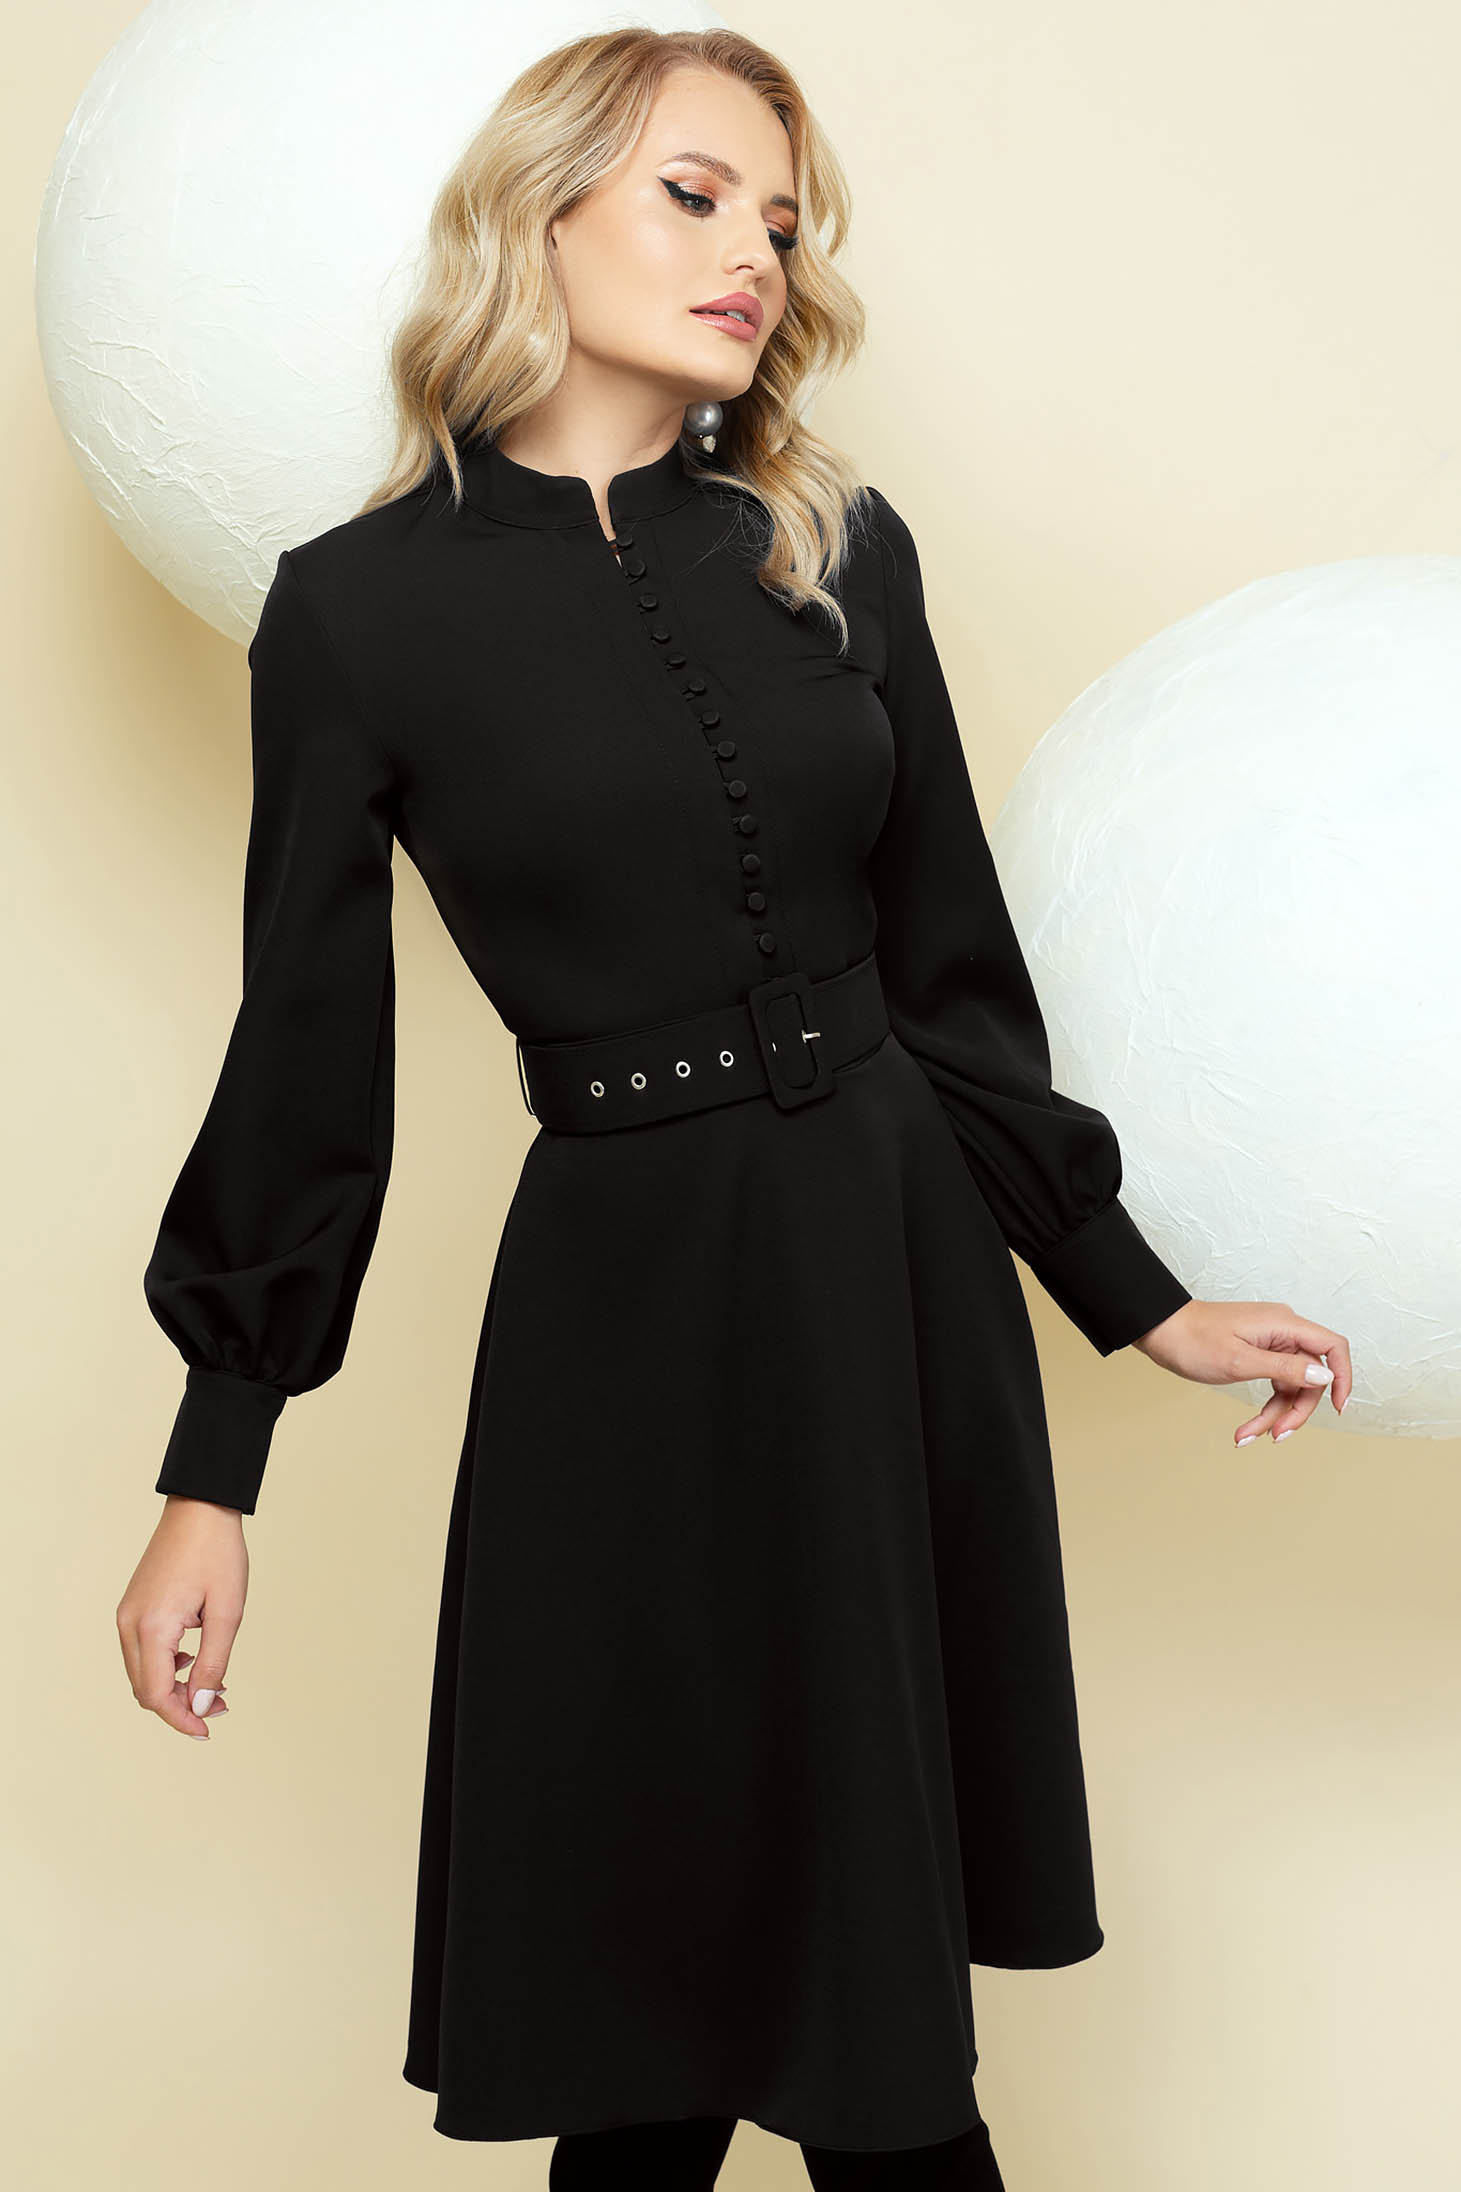 Elegant black cloche dress with puffed sleeves accessorized with belt